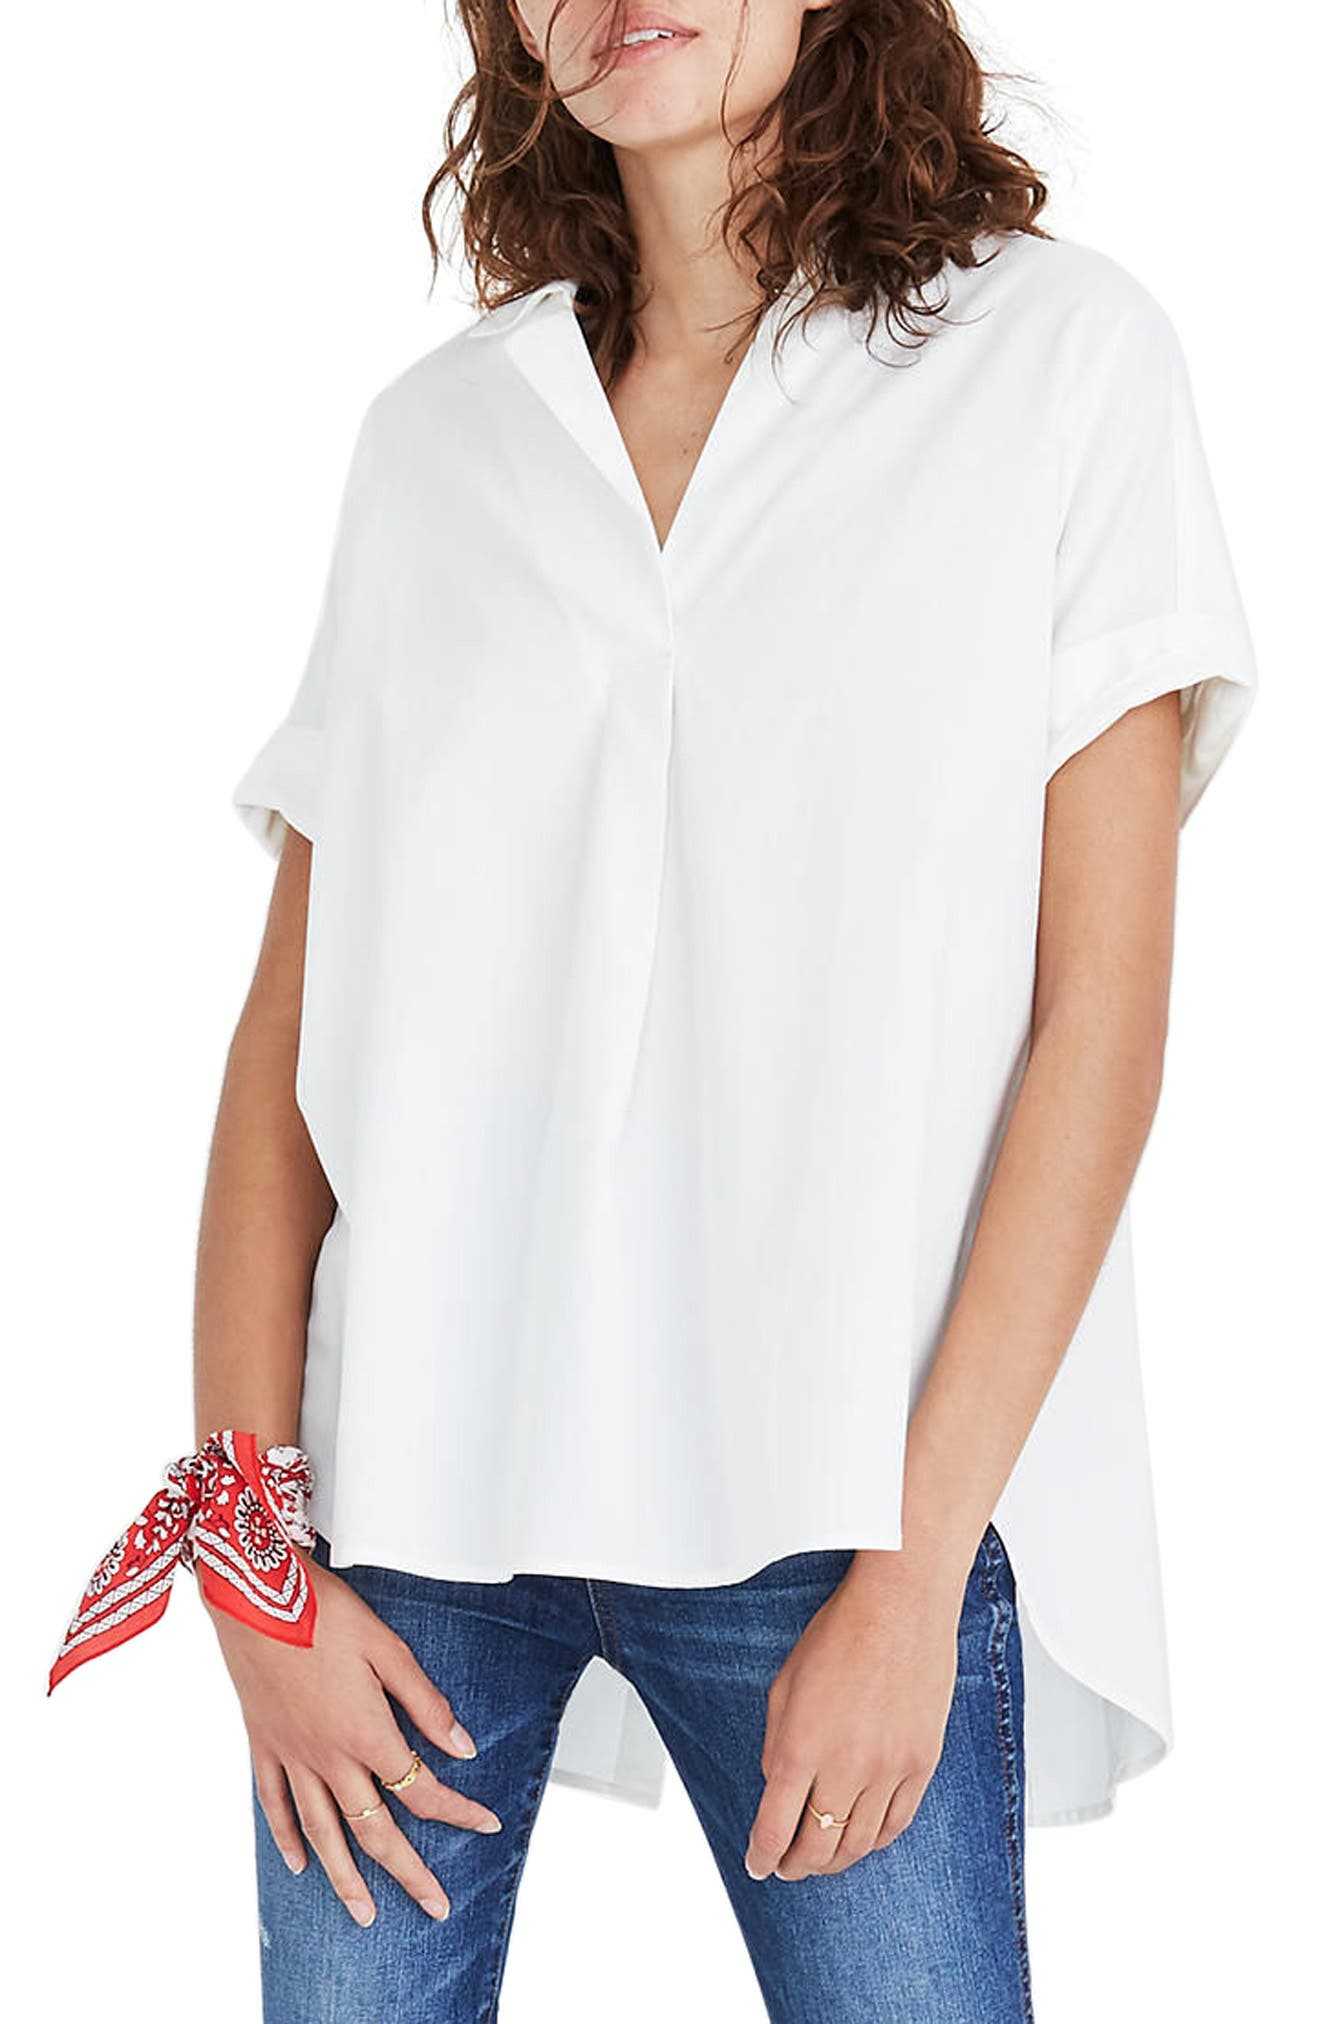 Signs Madewell Distribution Deal with Nordstrom best photo